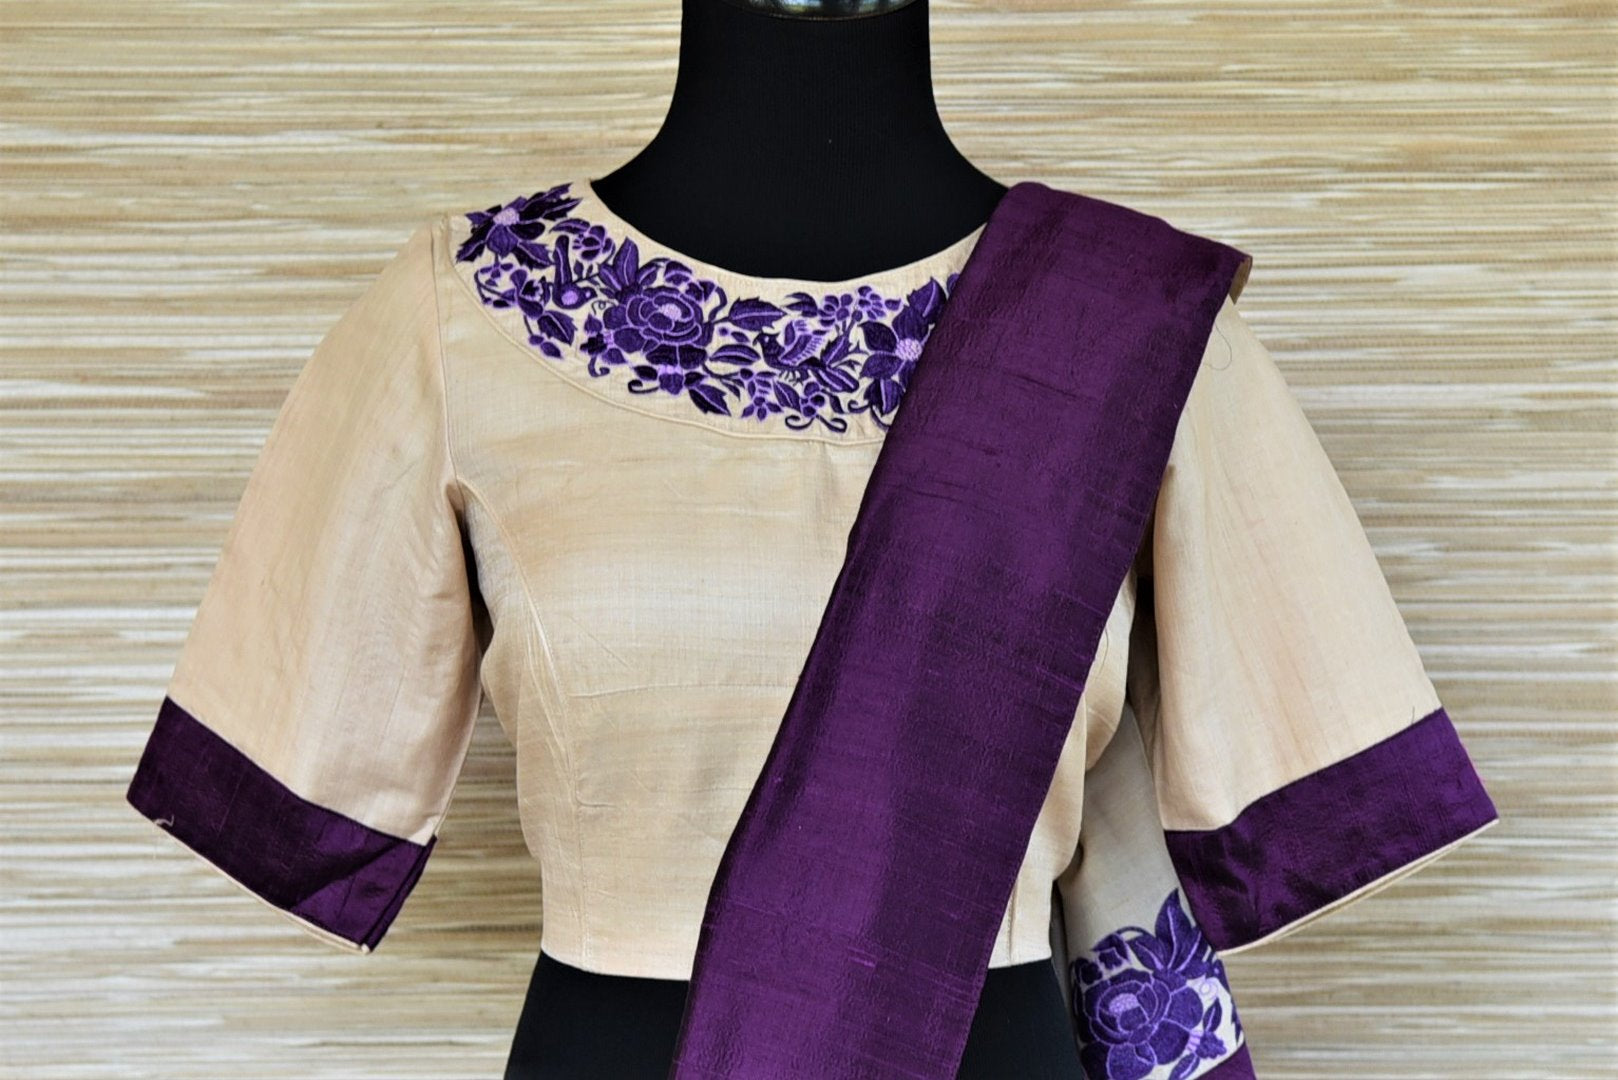 Buy stunning cream tussar sari online in USA with purple border and embroidered saree blouse. Grab exquisite handwoven sarees, embroidered saris, designer sarees with blouse for the coming festive and wedding season from Pure Elegance Indian boutique in USA. Shop online now.-blouse pallu